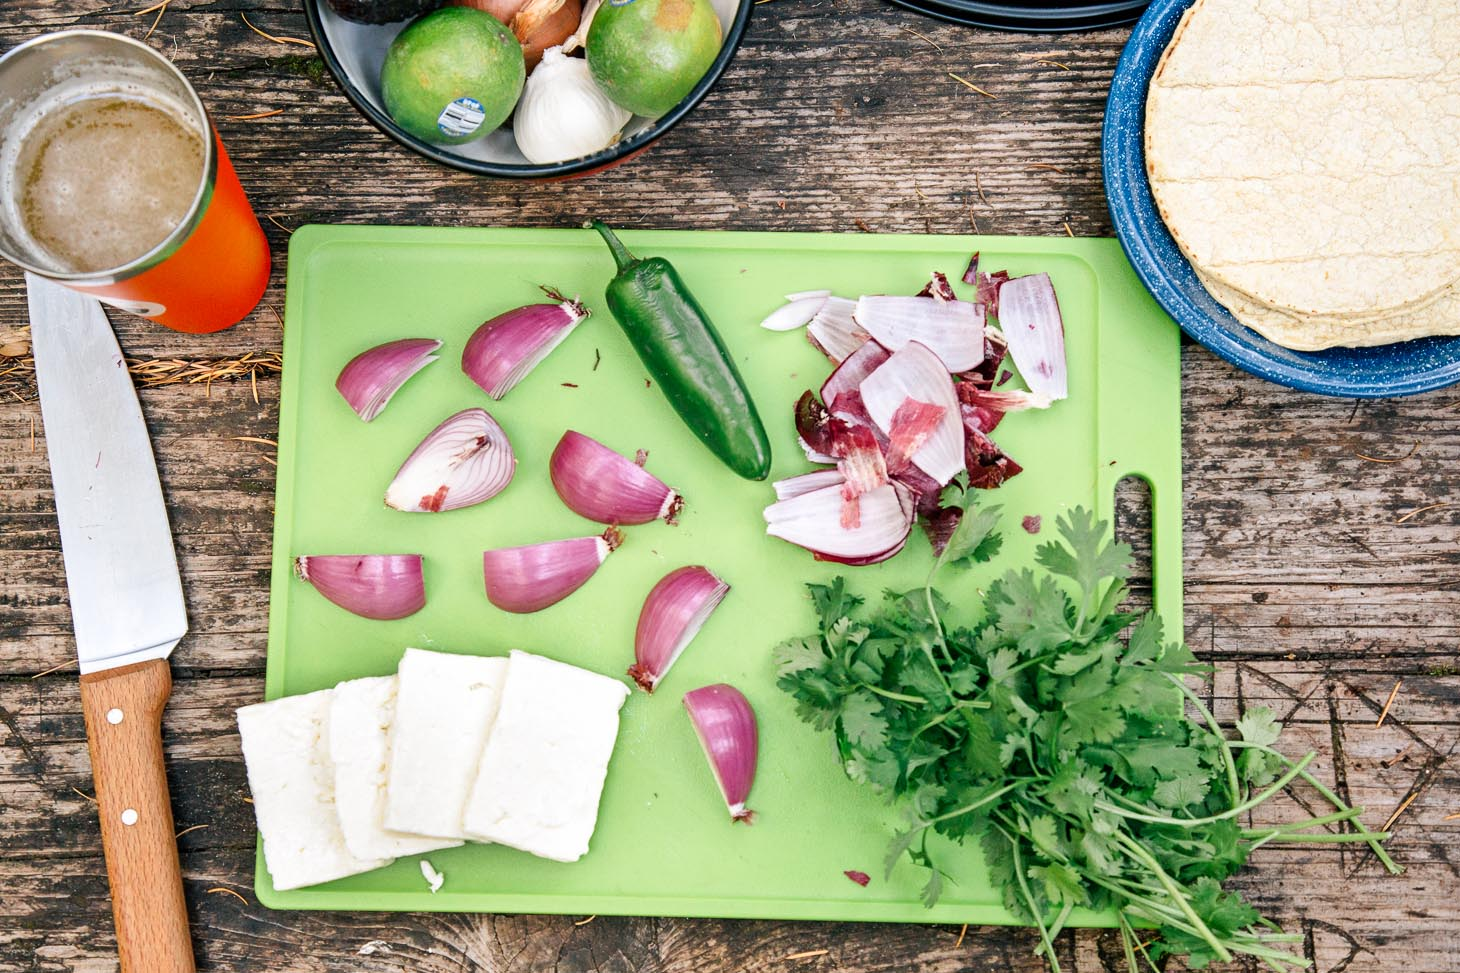 Ingredients for grilled halloumi tacos